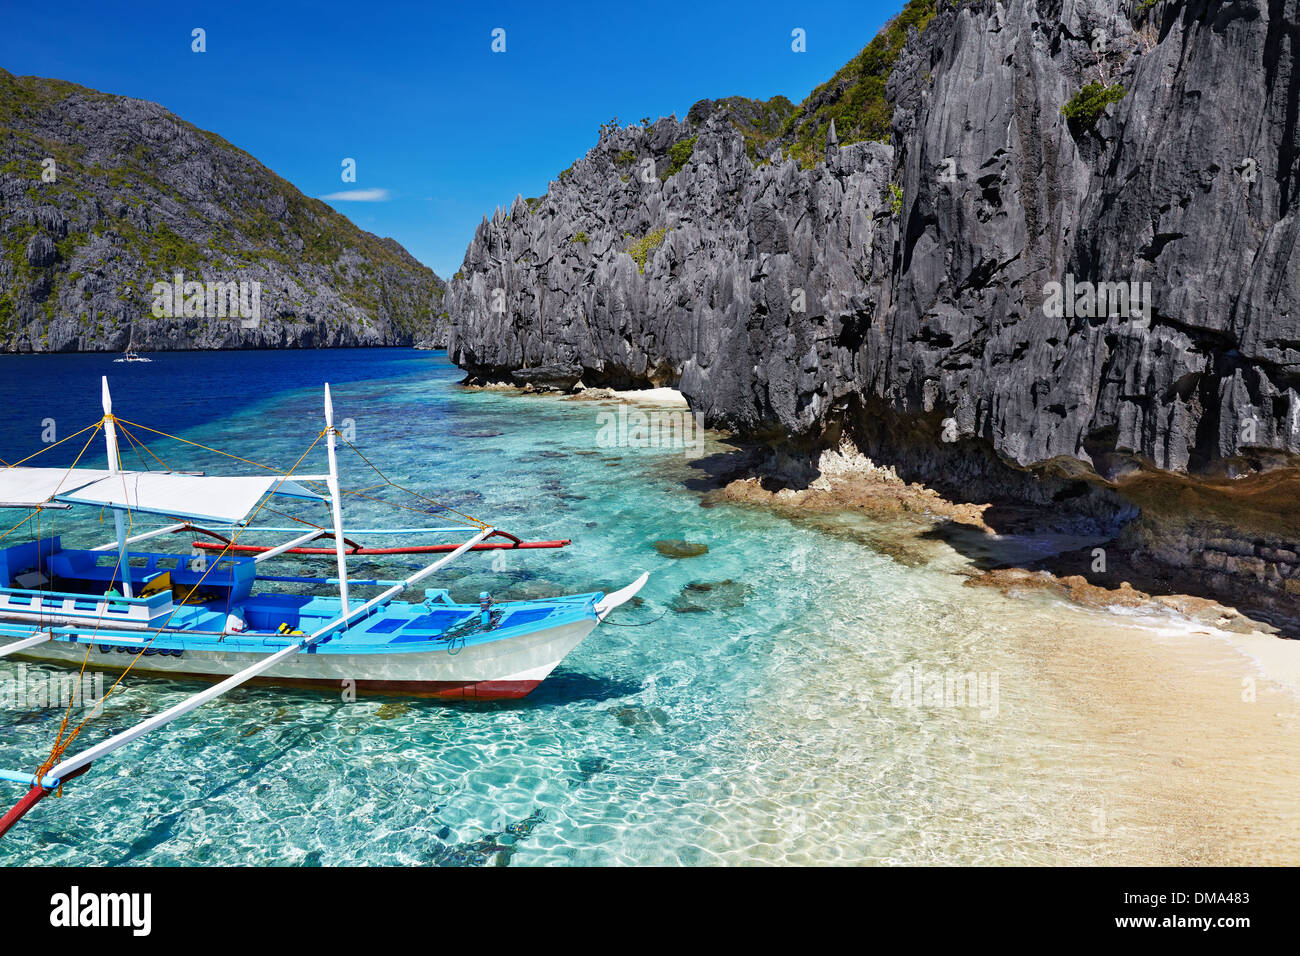 Tropical beach, South China See, El-Nido, Philippines - Stock Image